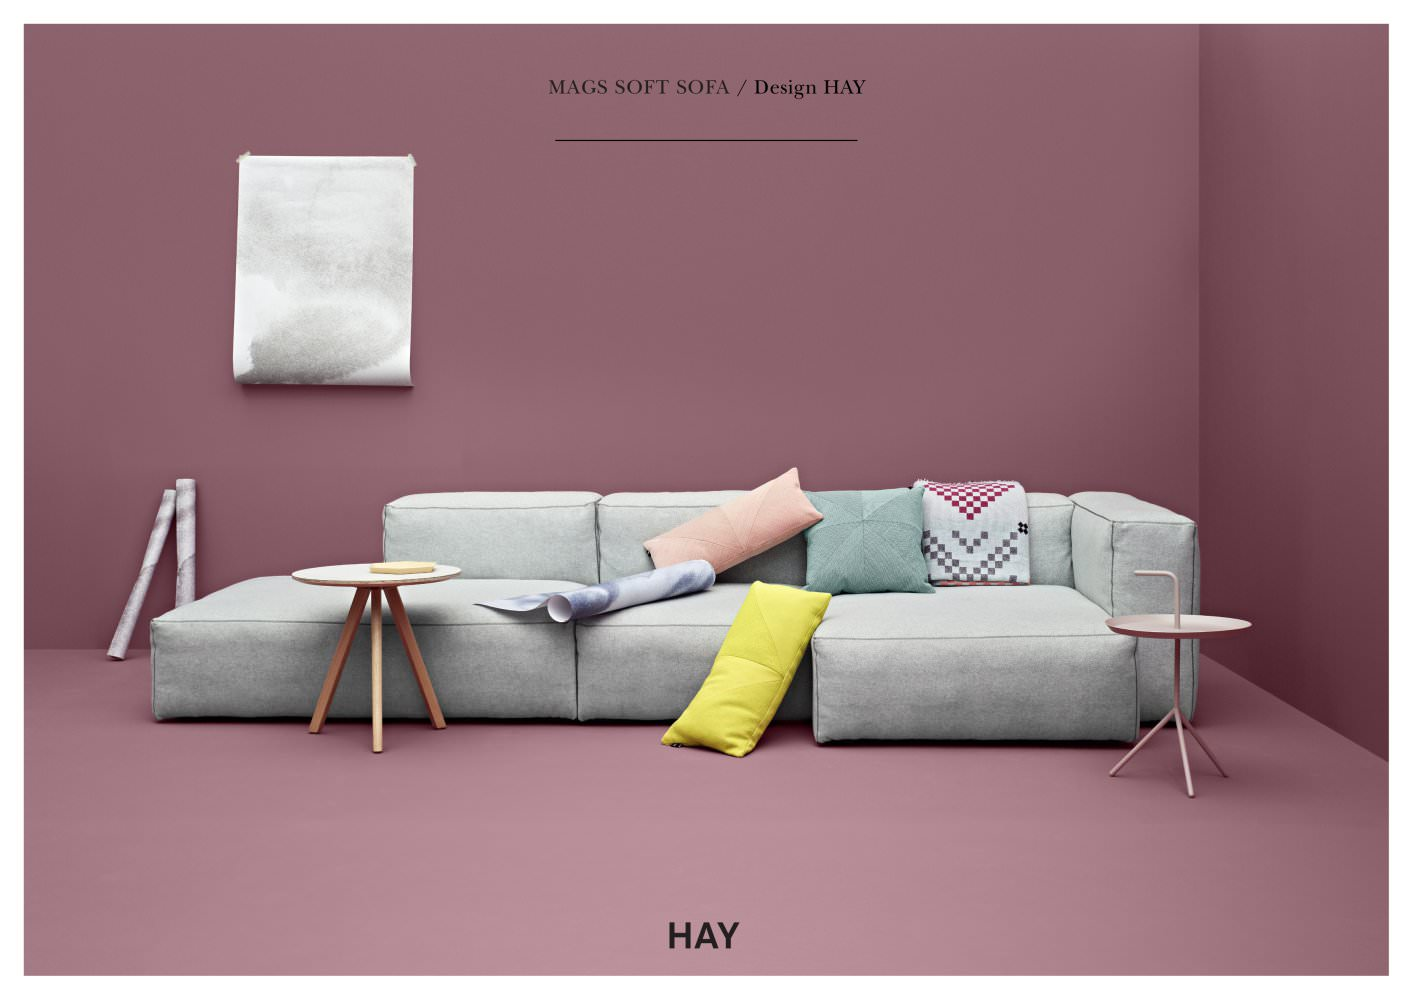 Mags Soft Sofa 1 6 Pages